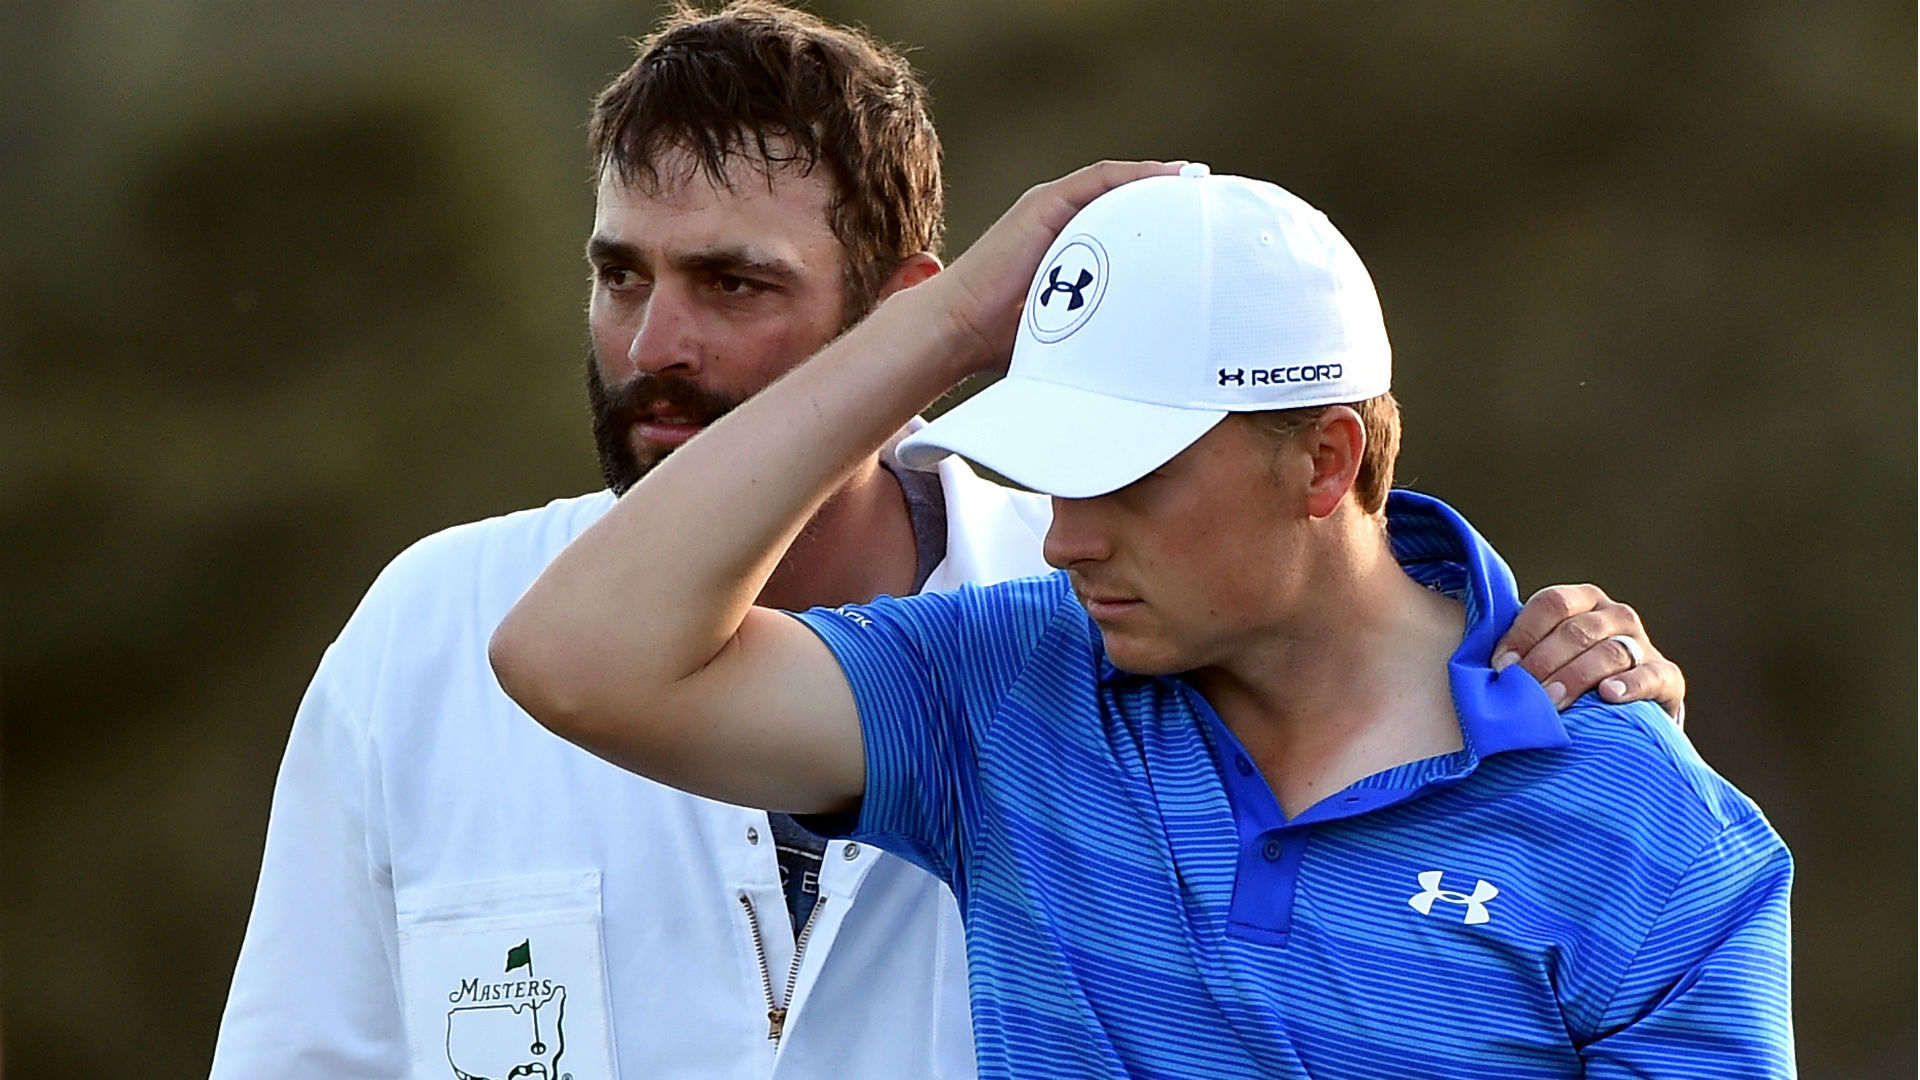 4c12f6ad17 How the 2016 Masters was won: A look back on Spieth's shocking slump ...